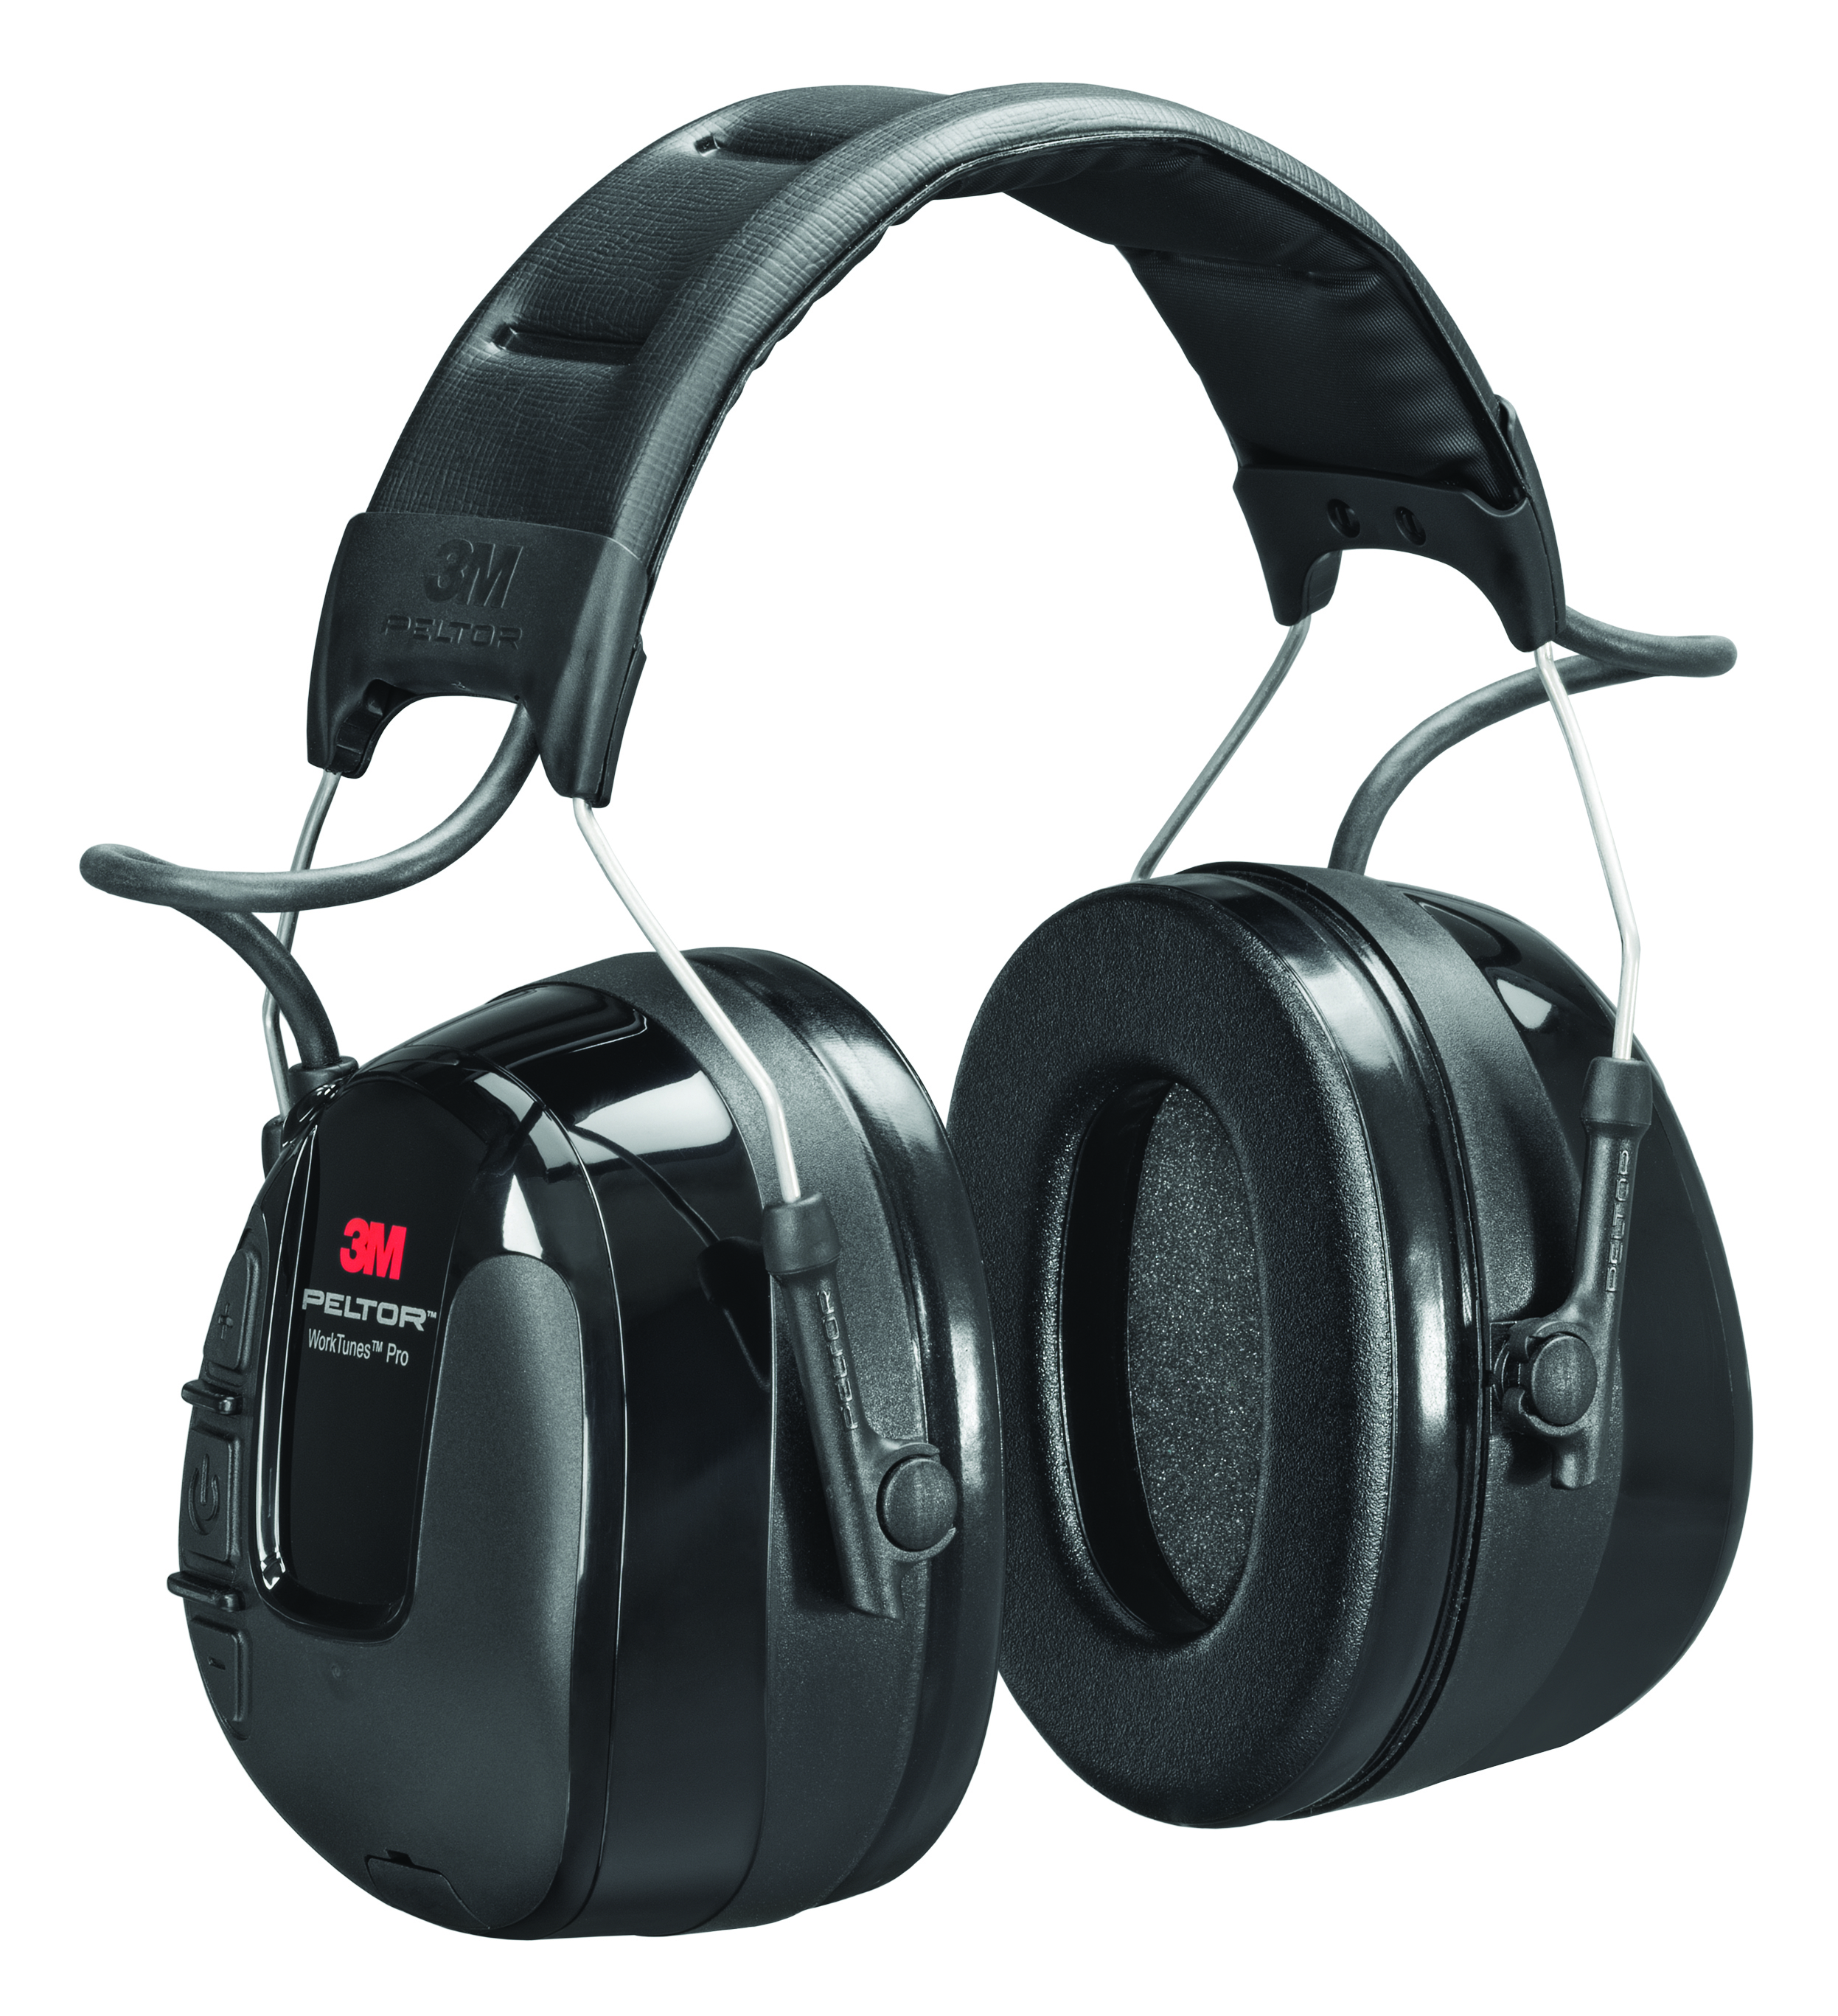 HRXS221P3E-NA - 3M™ Peltor™ WorkTunes™ Pro AM/FM Headset-(NRR)* 23 dB, Cap/Hard Hat Mounted-----UOM: 1/EA